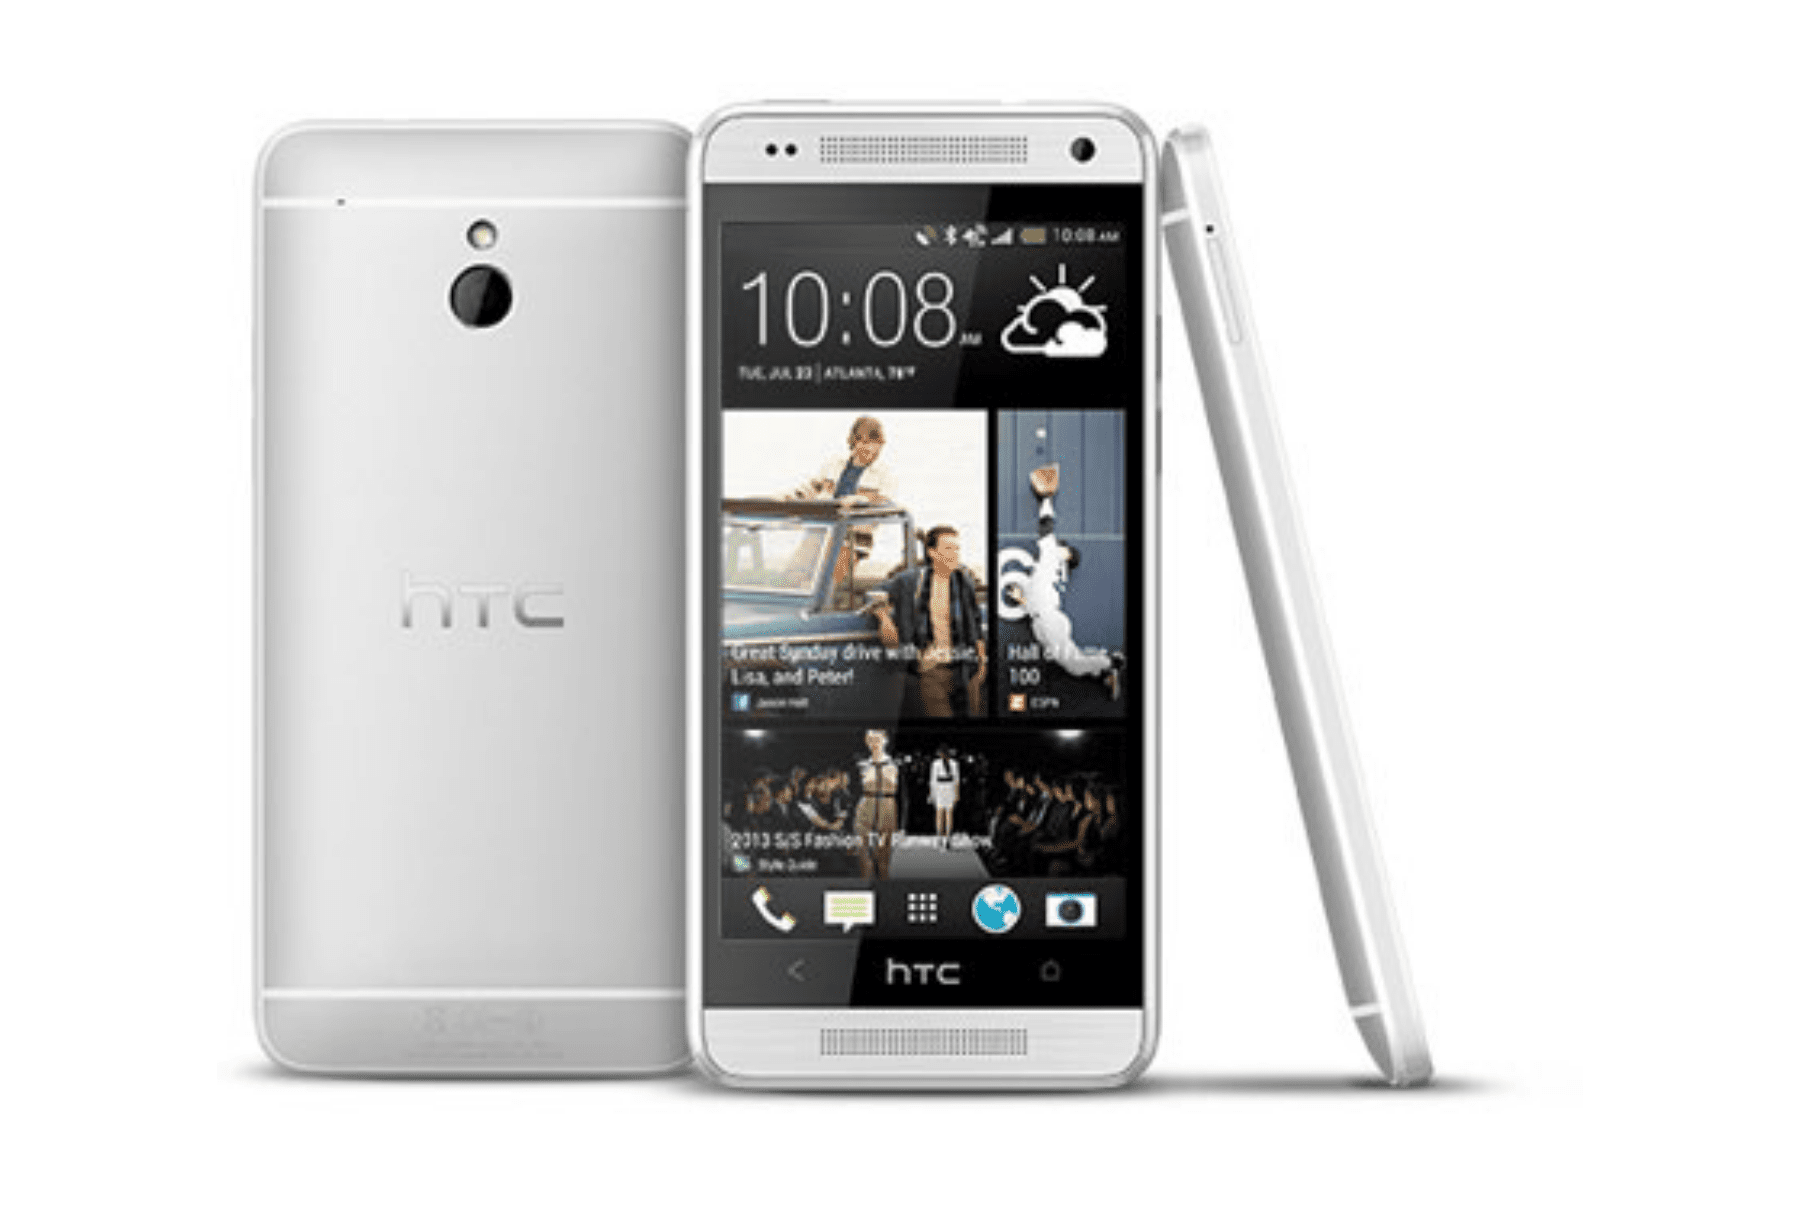 HTC One Mini smartphones, seen from back, front, and side